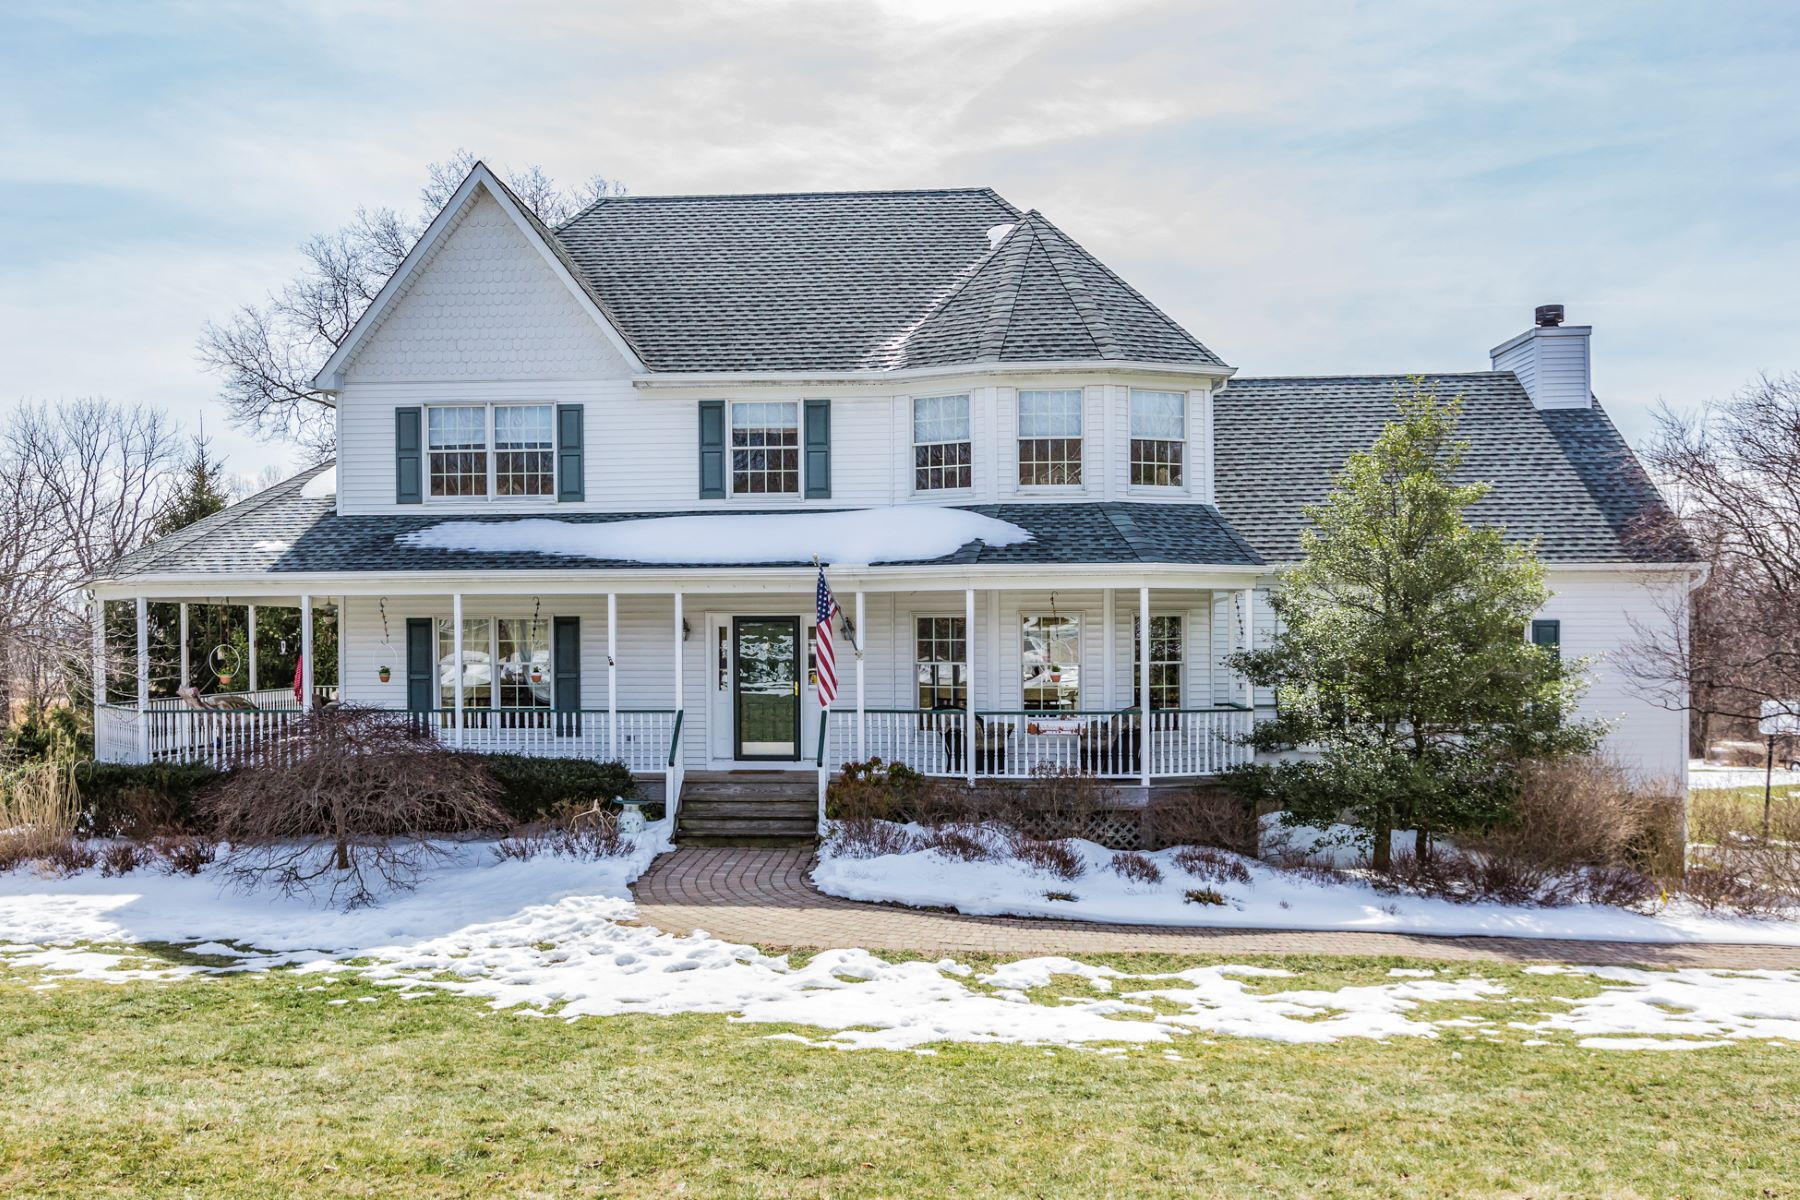 Single Family Home for Sale at Designed For Fun - Delaware Township 33 Sutton Farm Road Flemington, New Jersey 08822 United States